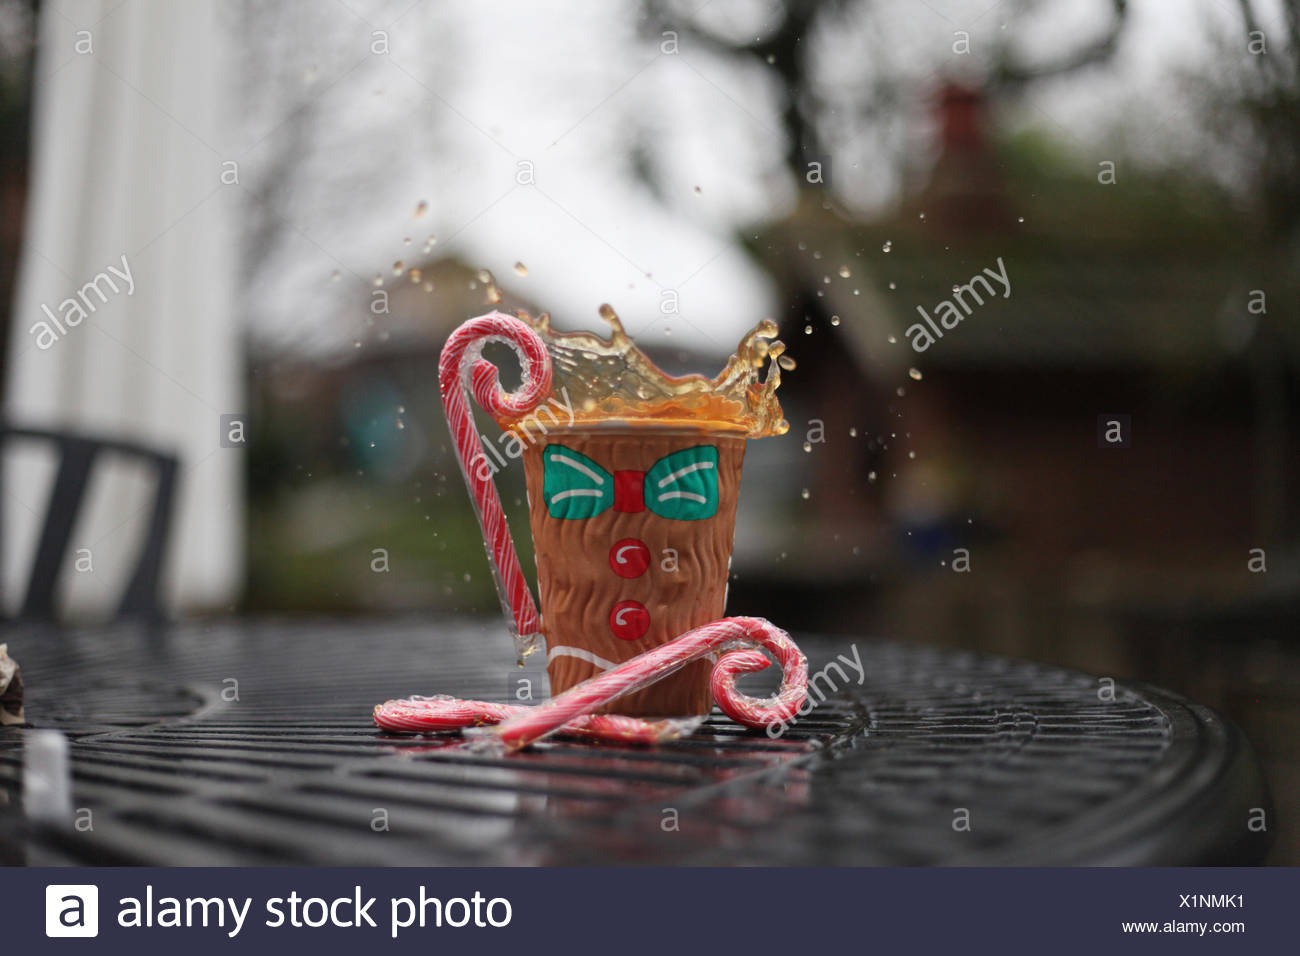 UK, Christmas Goodies! Splash of tea, surrounded by candy canes - Stock Image